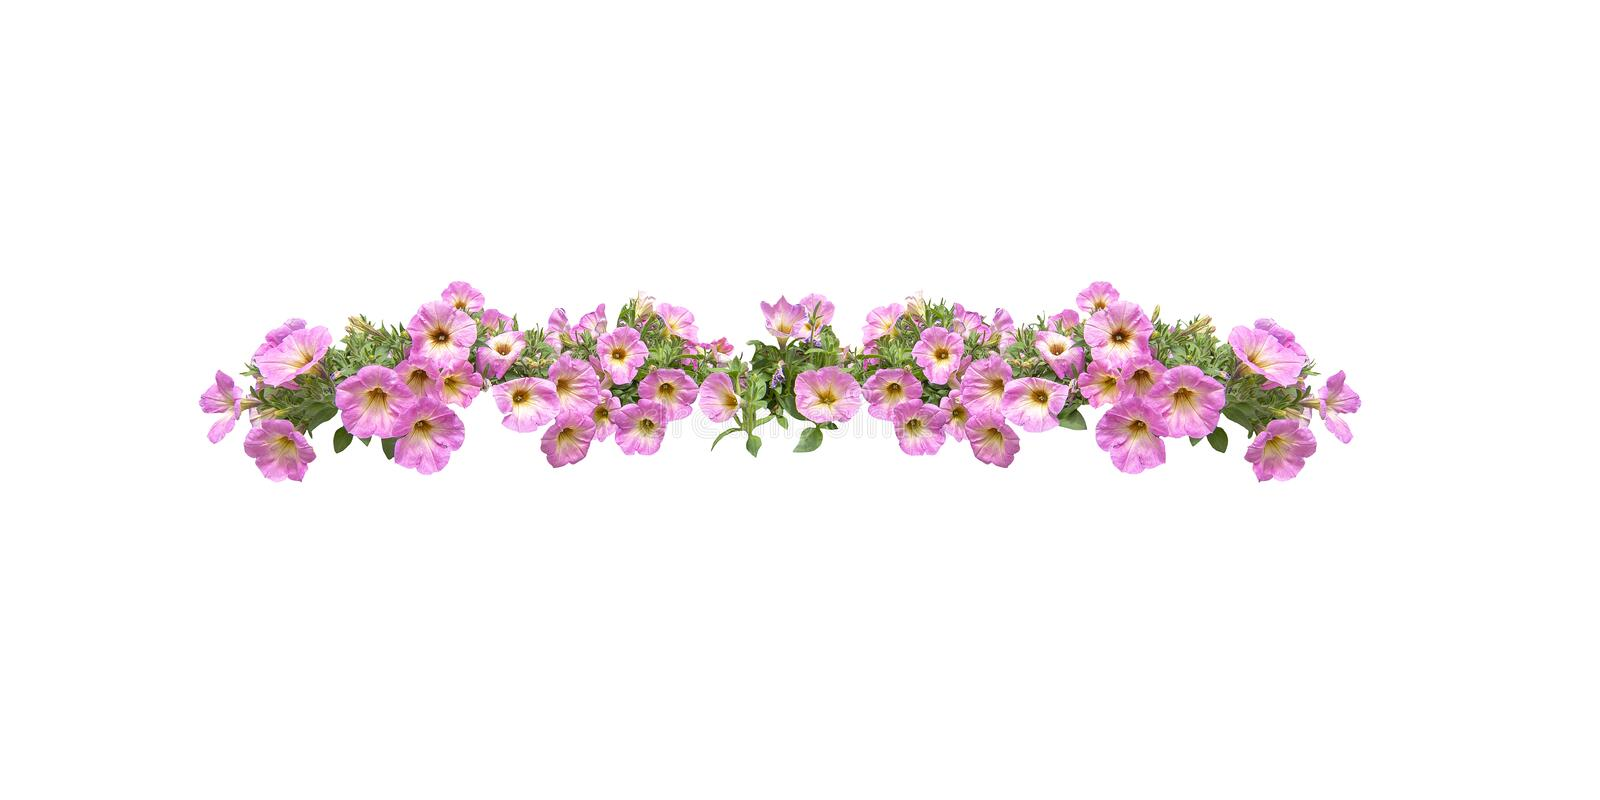 Pink petunia flowers string margin element isolated royalty free stock images